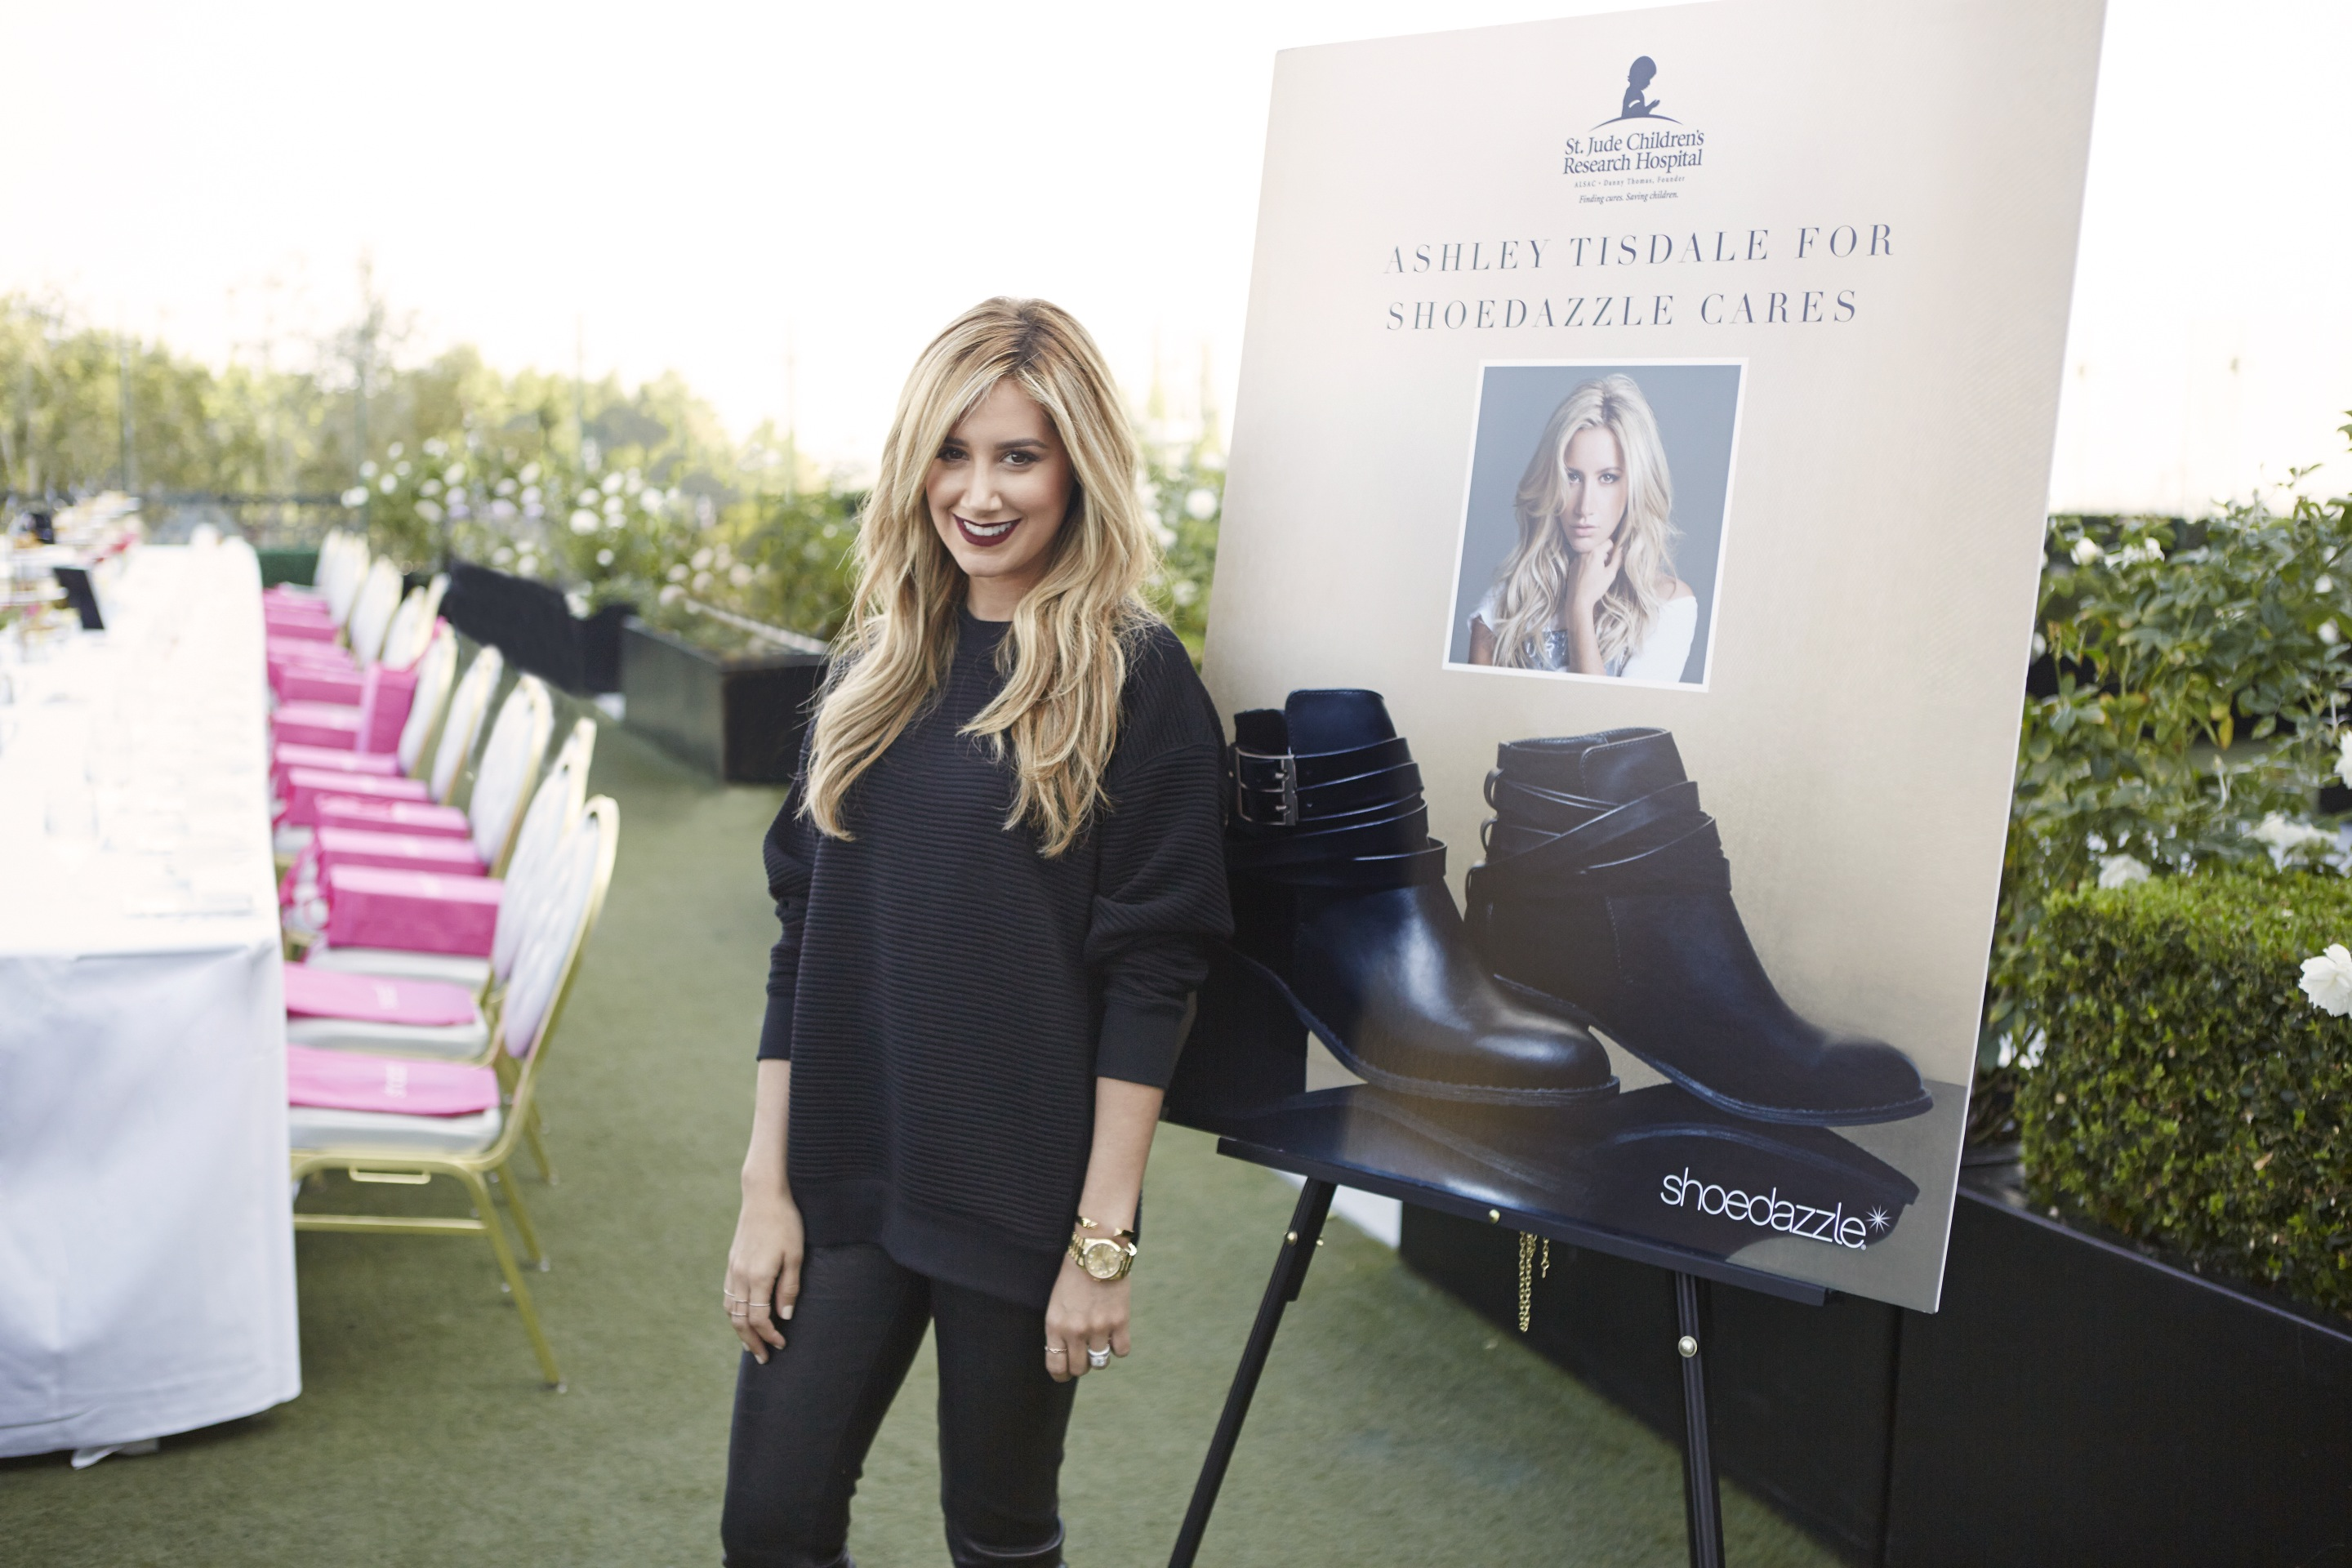 Ashley Tisdale attends the launch of her ShoeDazzle cares campaign benefitting St. Jude's Children's Research Hospital.